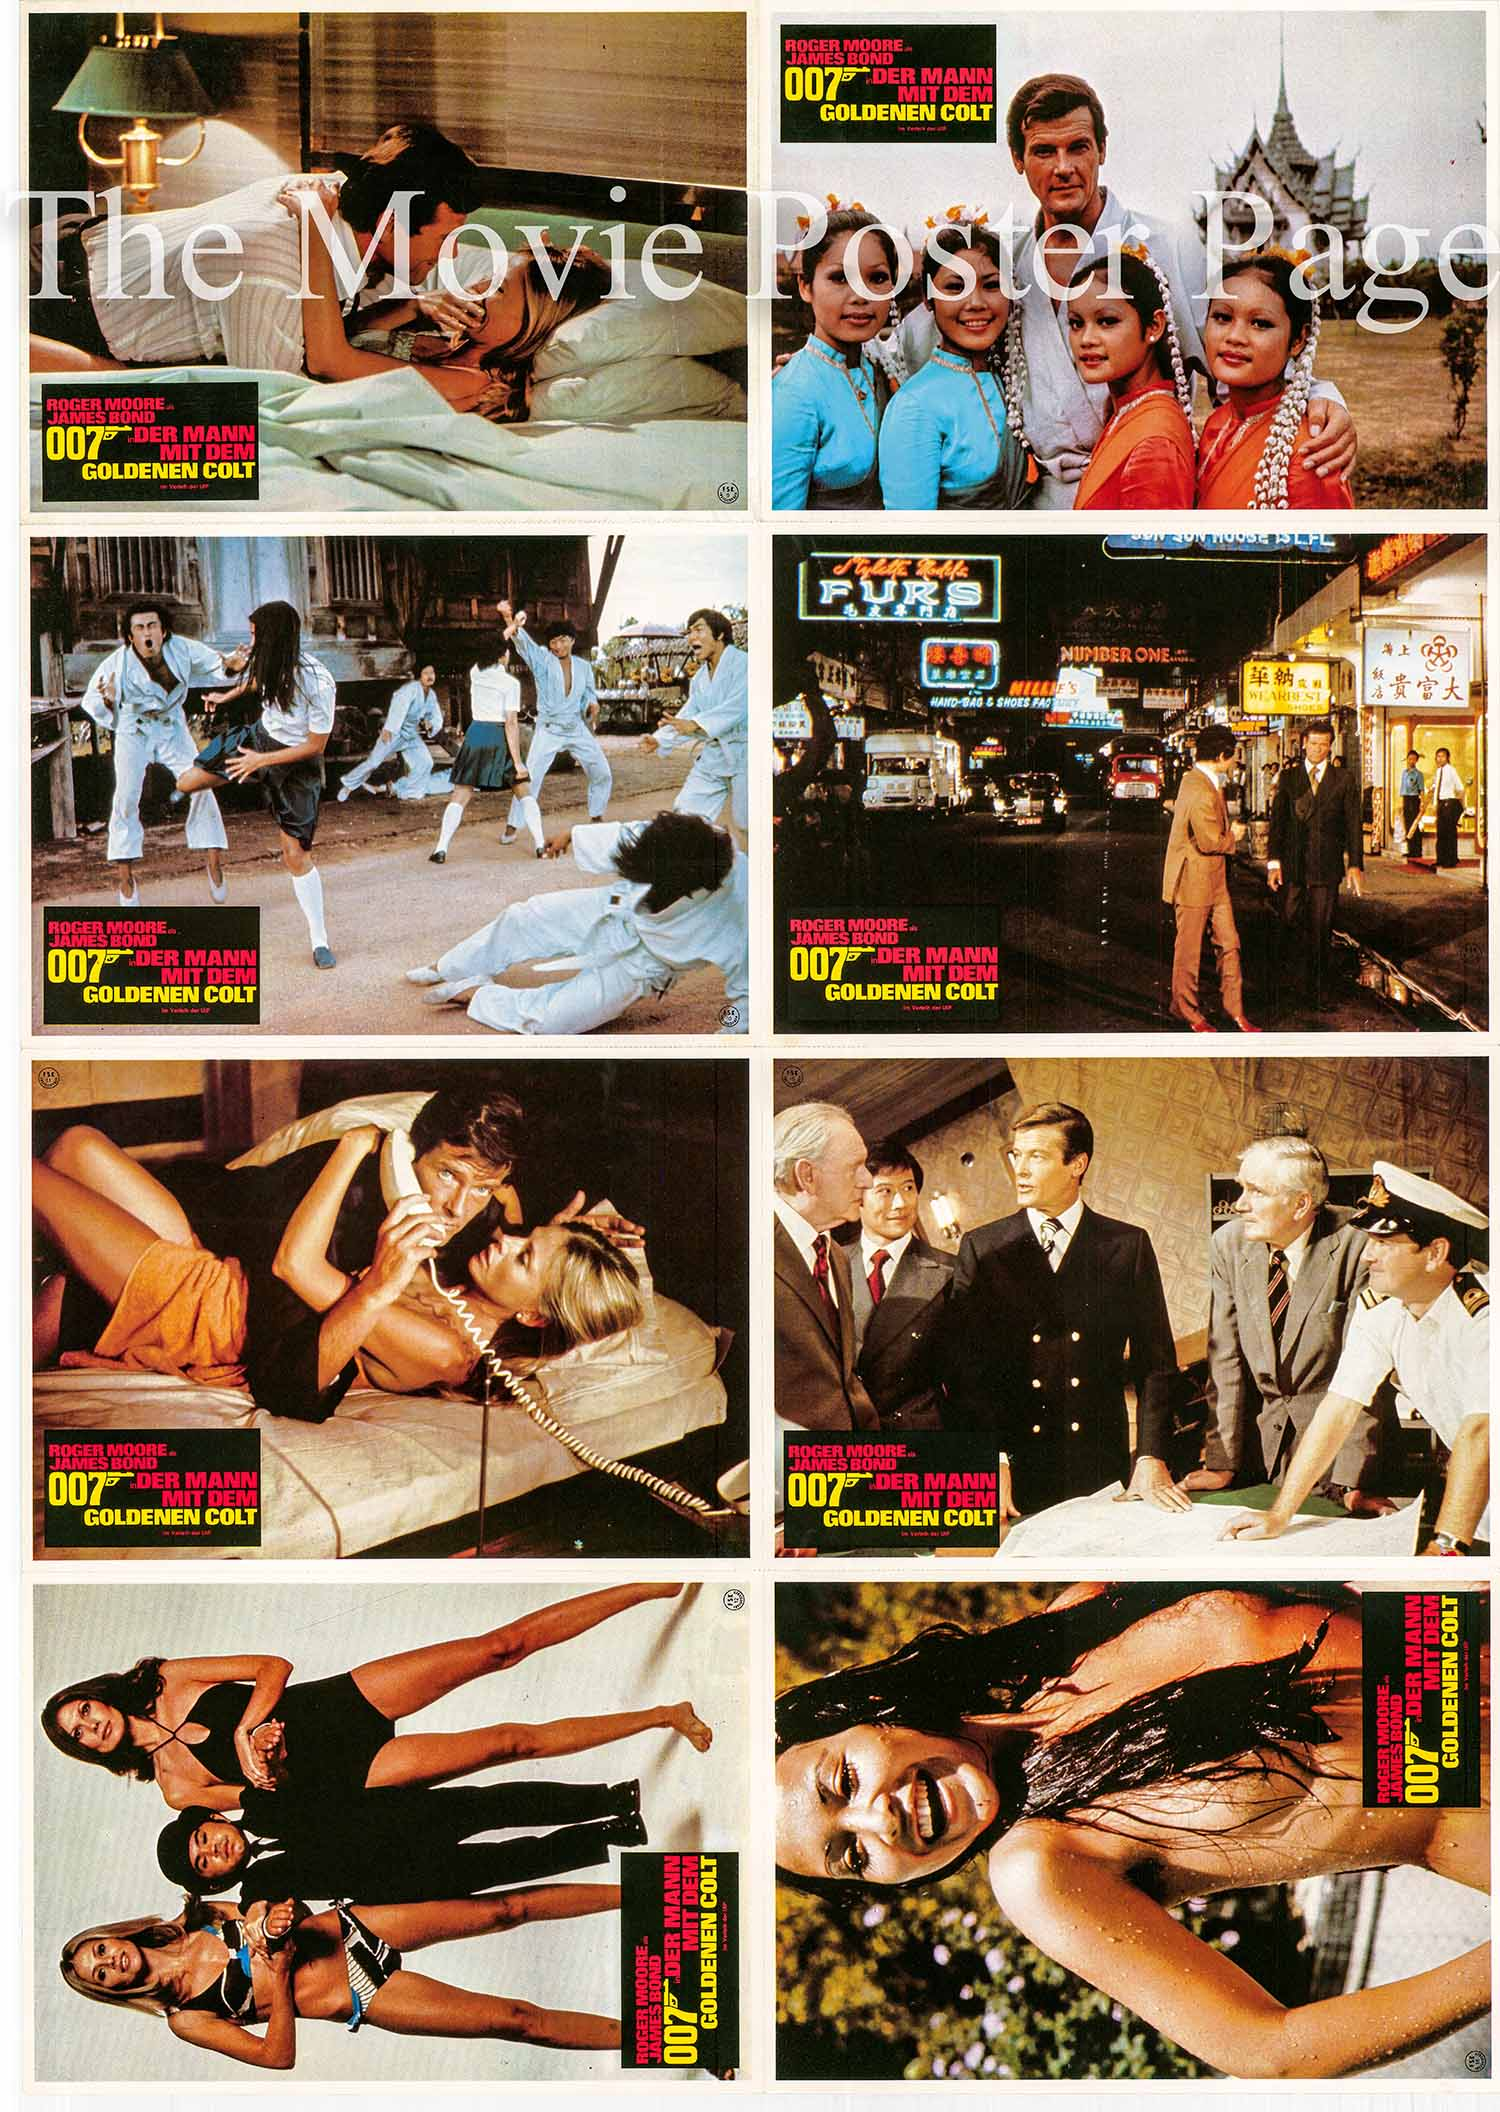 Pictured is a sheet of perforated paper lobby cards made to promote a 1980s rerelease of the 1974 Guy Hamilton film The Man with the Golden Gun starring Roger Moore as James Bond.